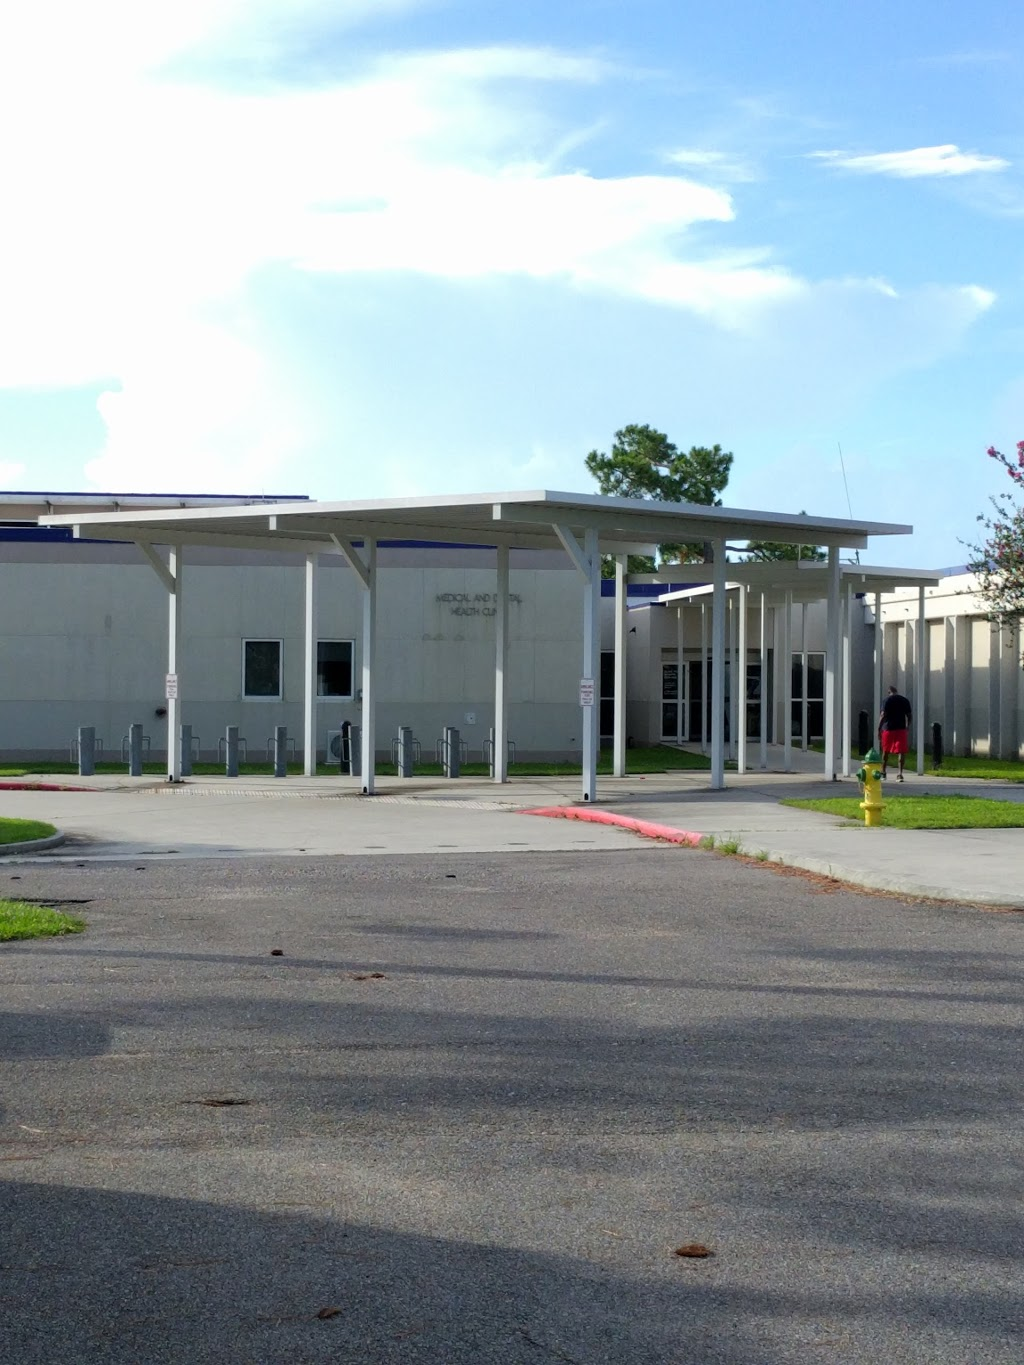 Naval Branch Health Clinic Belle Chasse - hospital  | Photo 1 of 7 | Address: 400 Russell Dr bldg 41, Belle Chasse, LA 70037, USA | Phone: (504) 678-3660